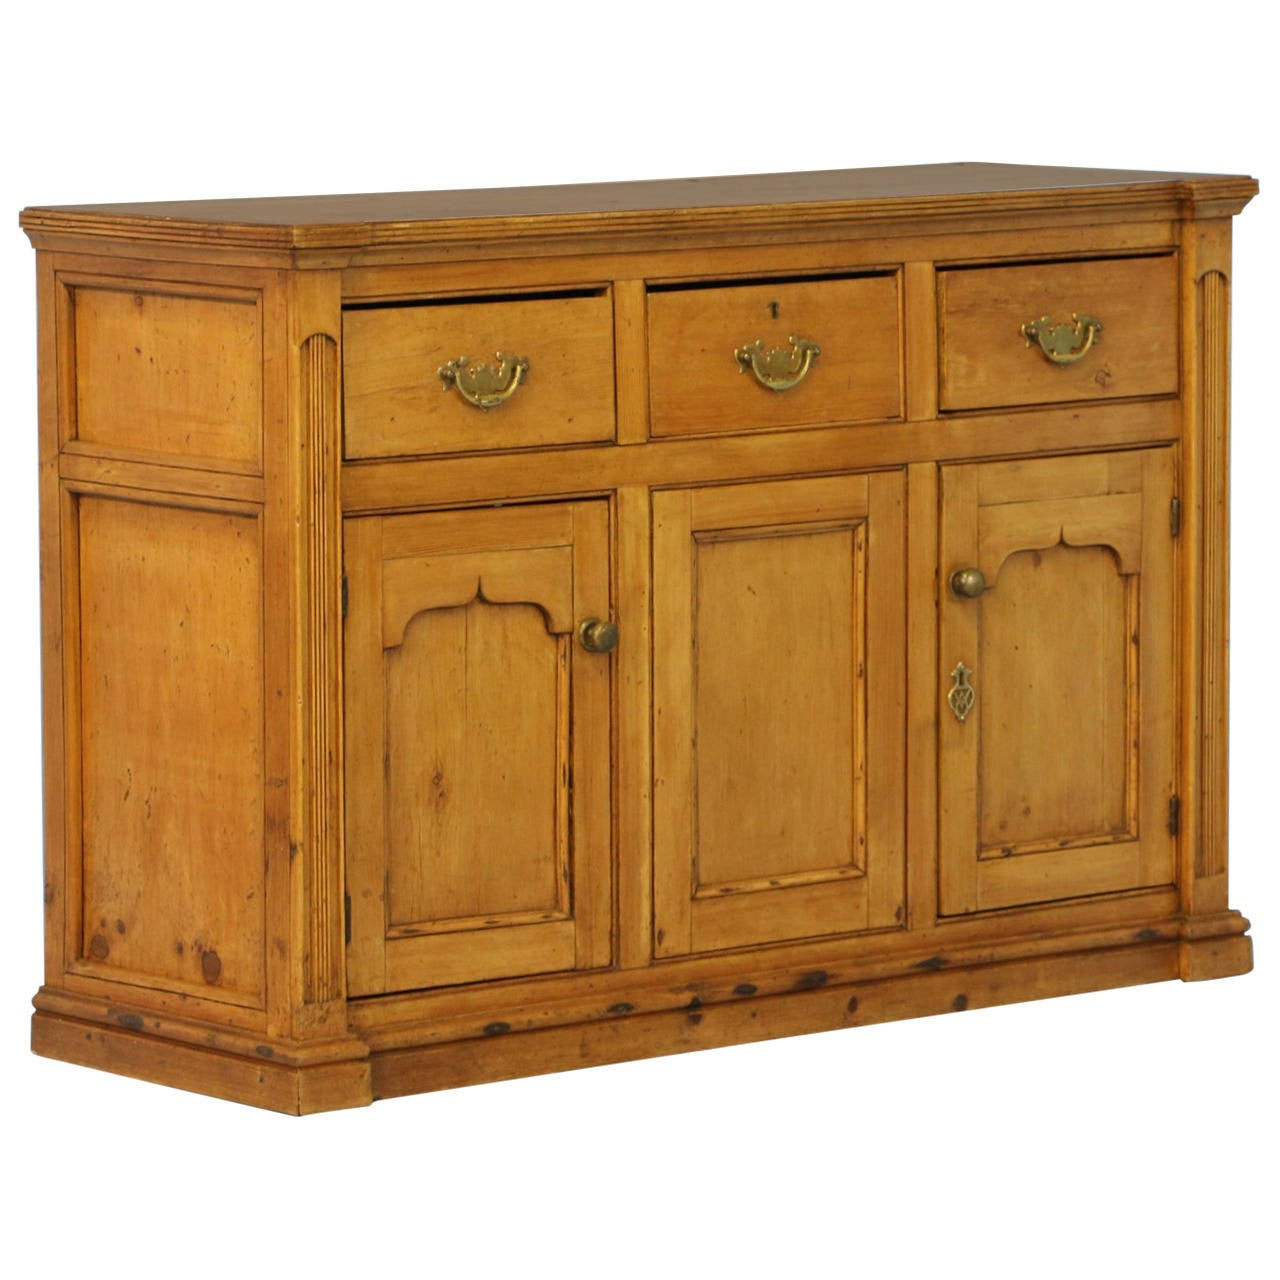 antique pine buffet sideboard england circa 1850 at 1stdibs. Black Bedroom Furniture Sets. Home Design Ideas